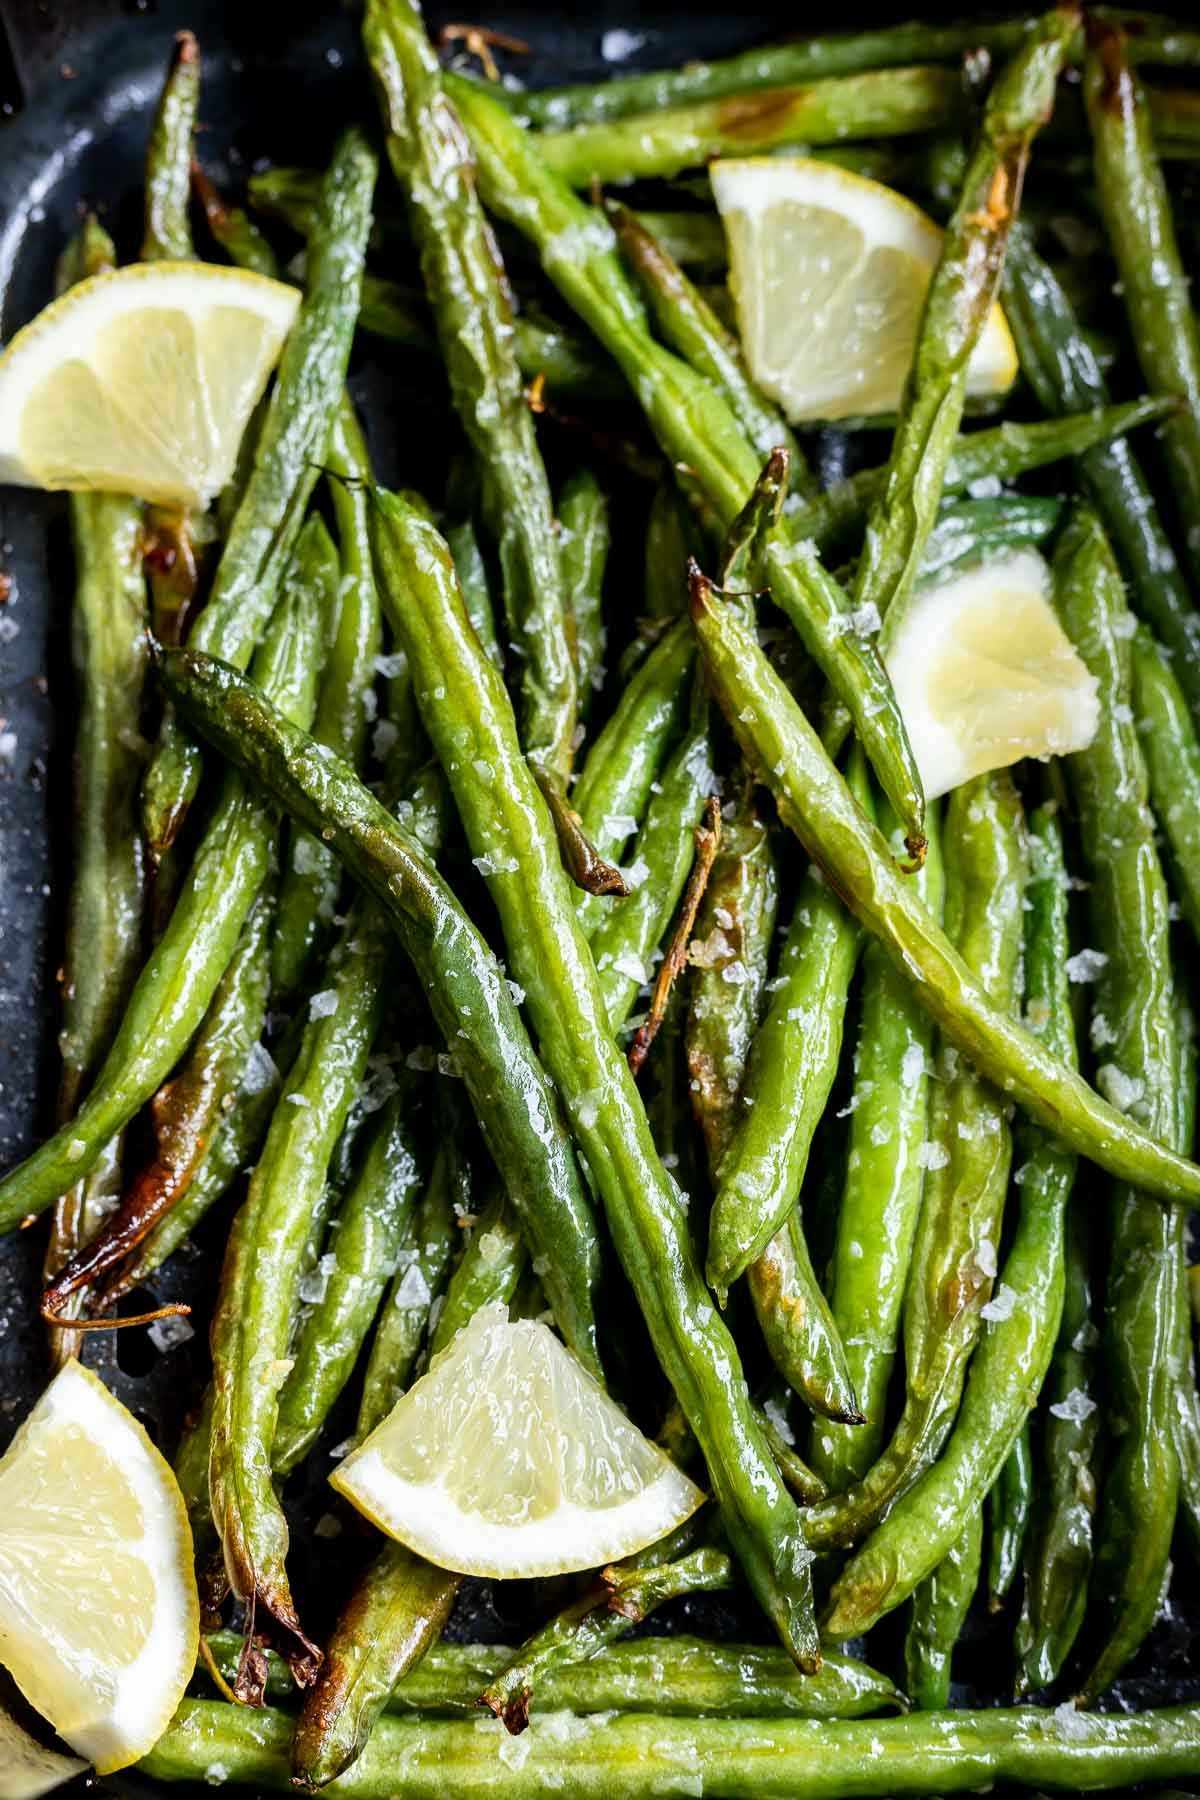 green beans and lemon wedges in air fryer basket